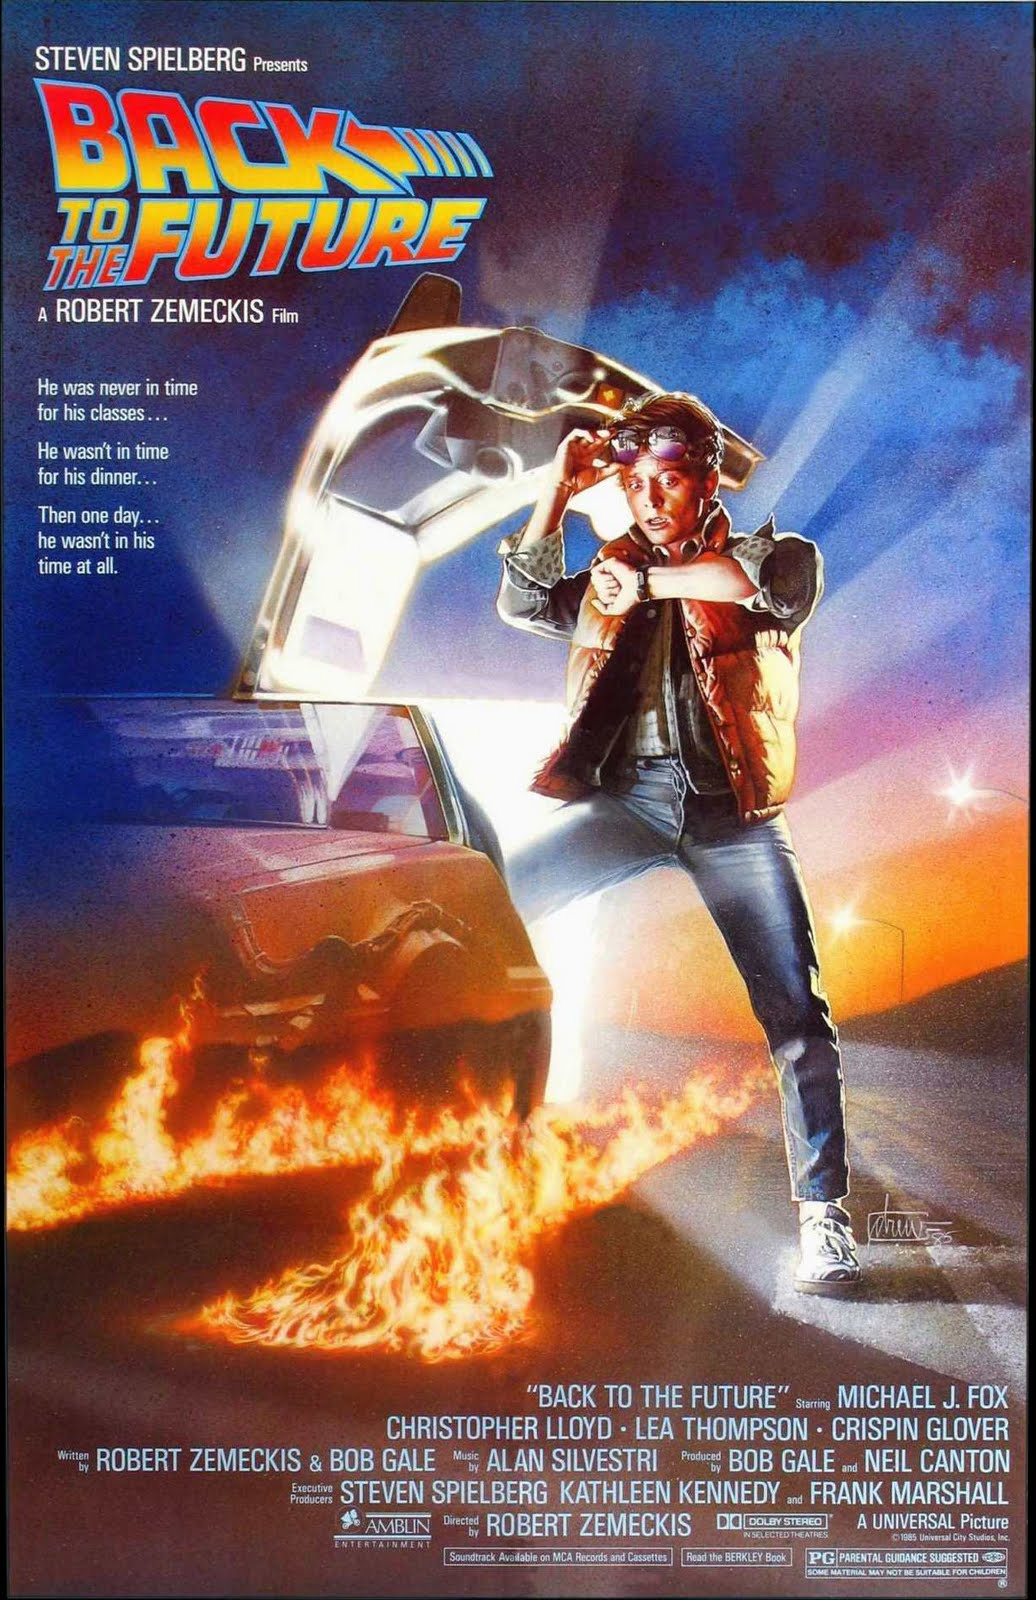 Snobbery 25 years ago today back to the future july 3 1985